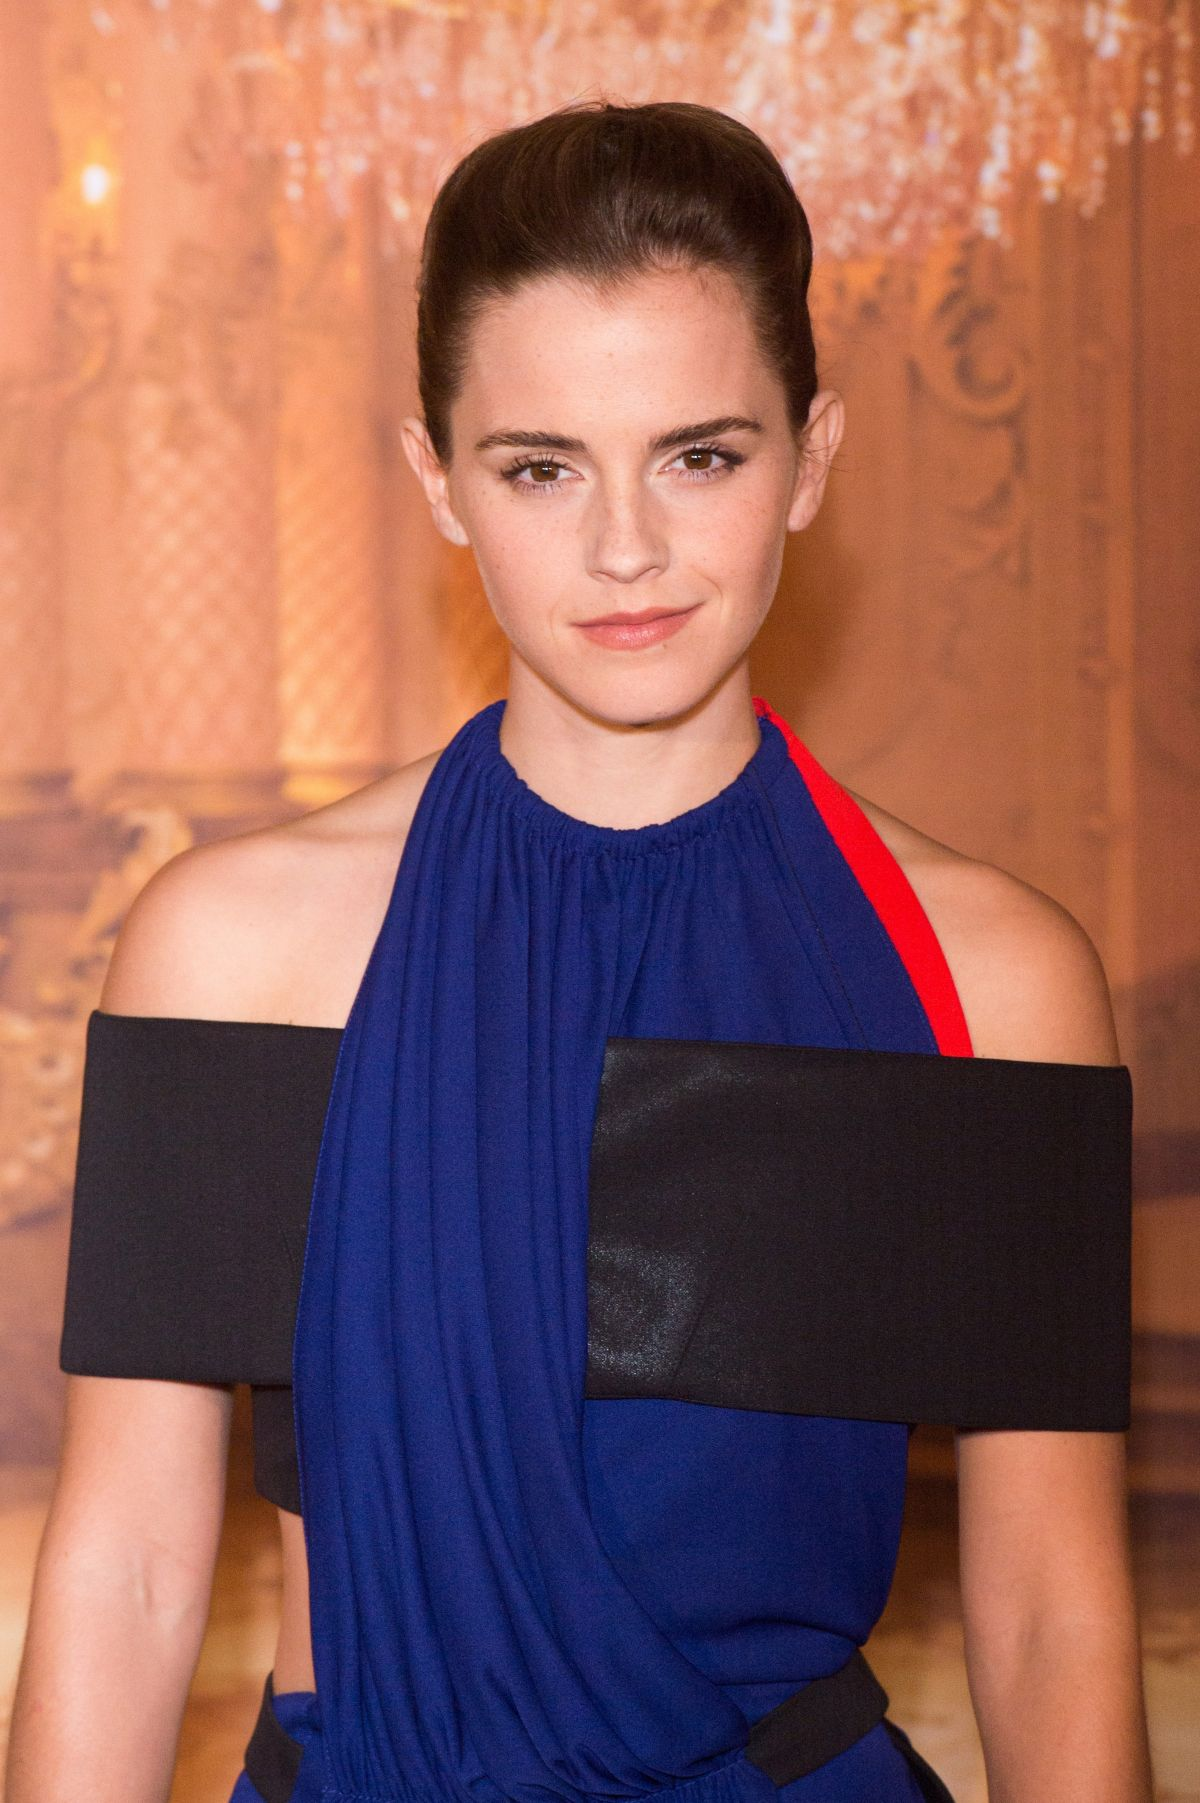 EMMA WATSON at Beauty and the Beast Photocall in Paris 02/20/2017